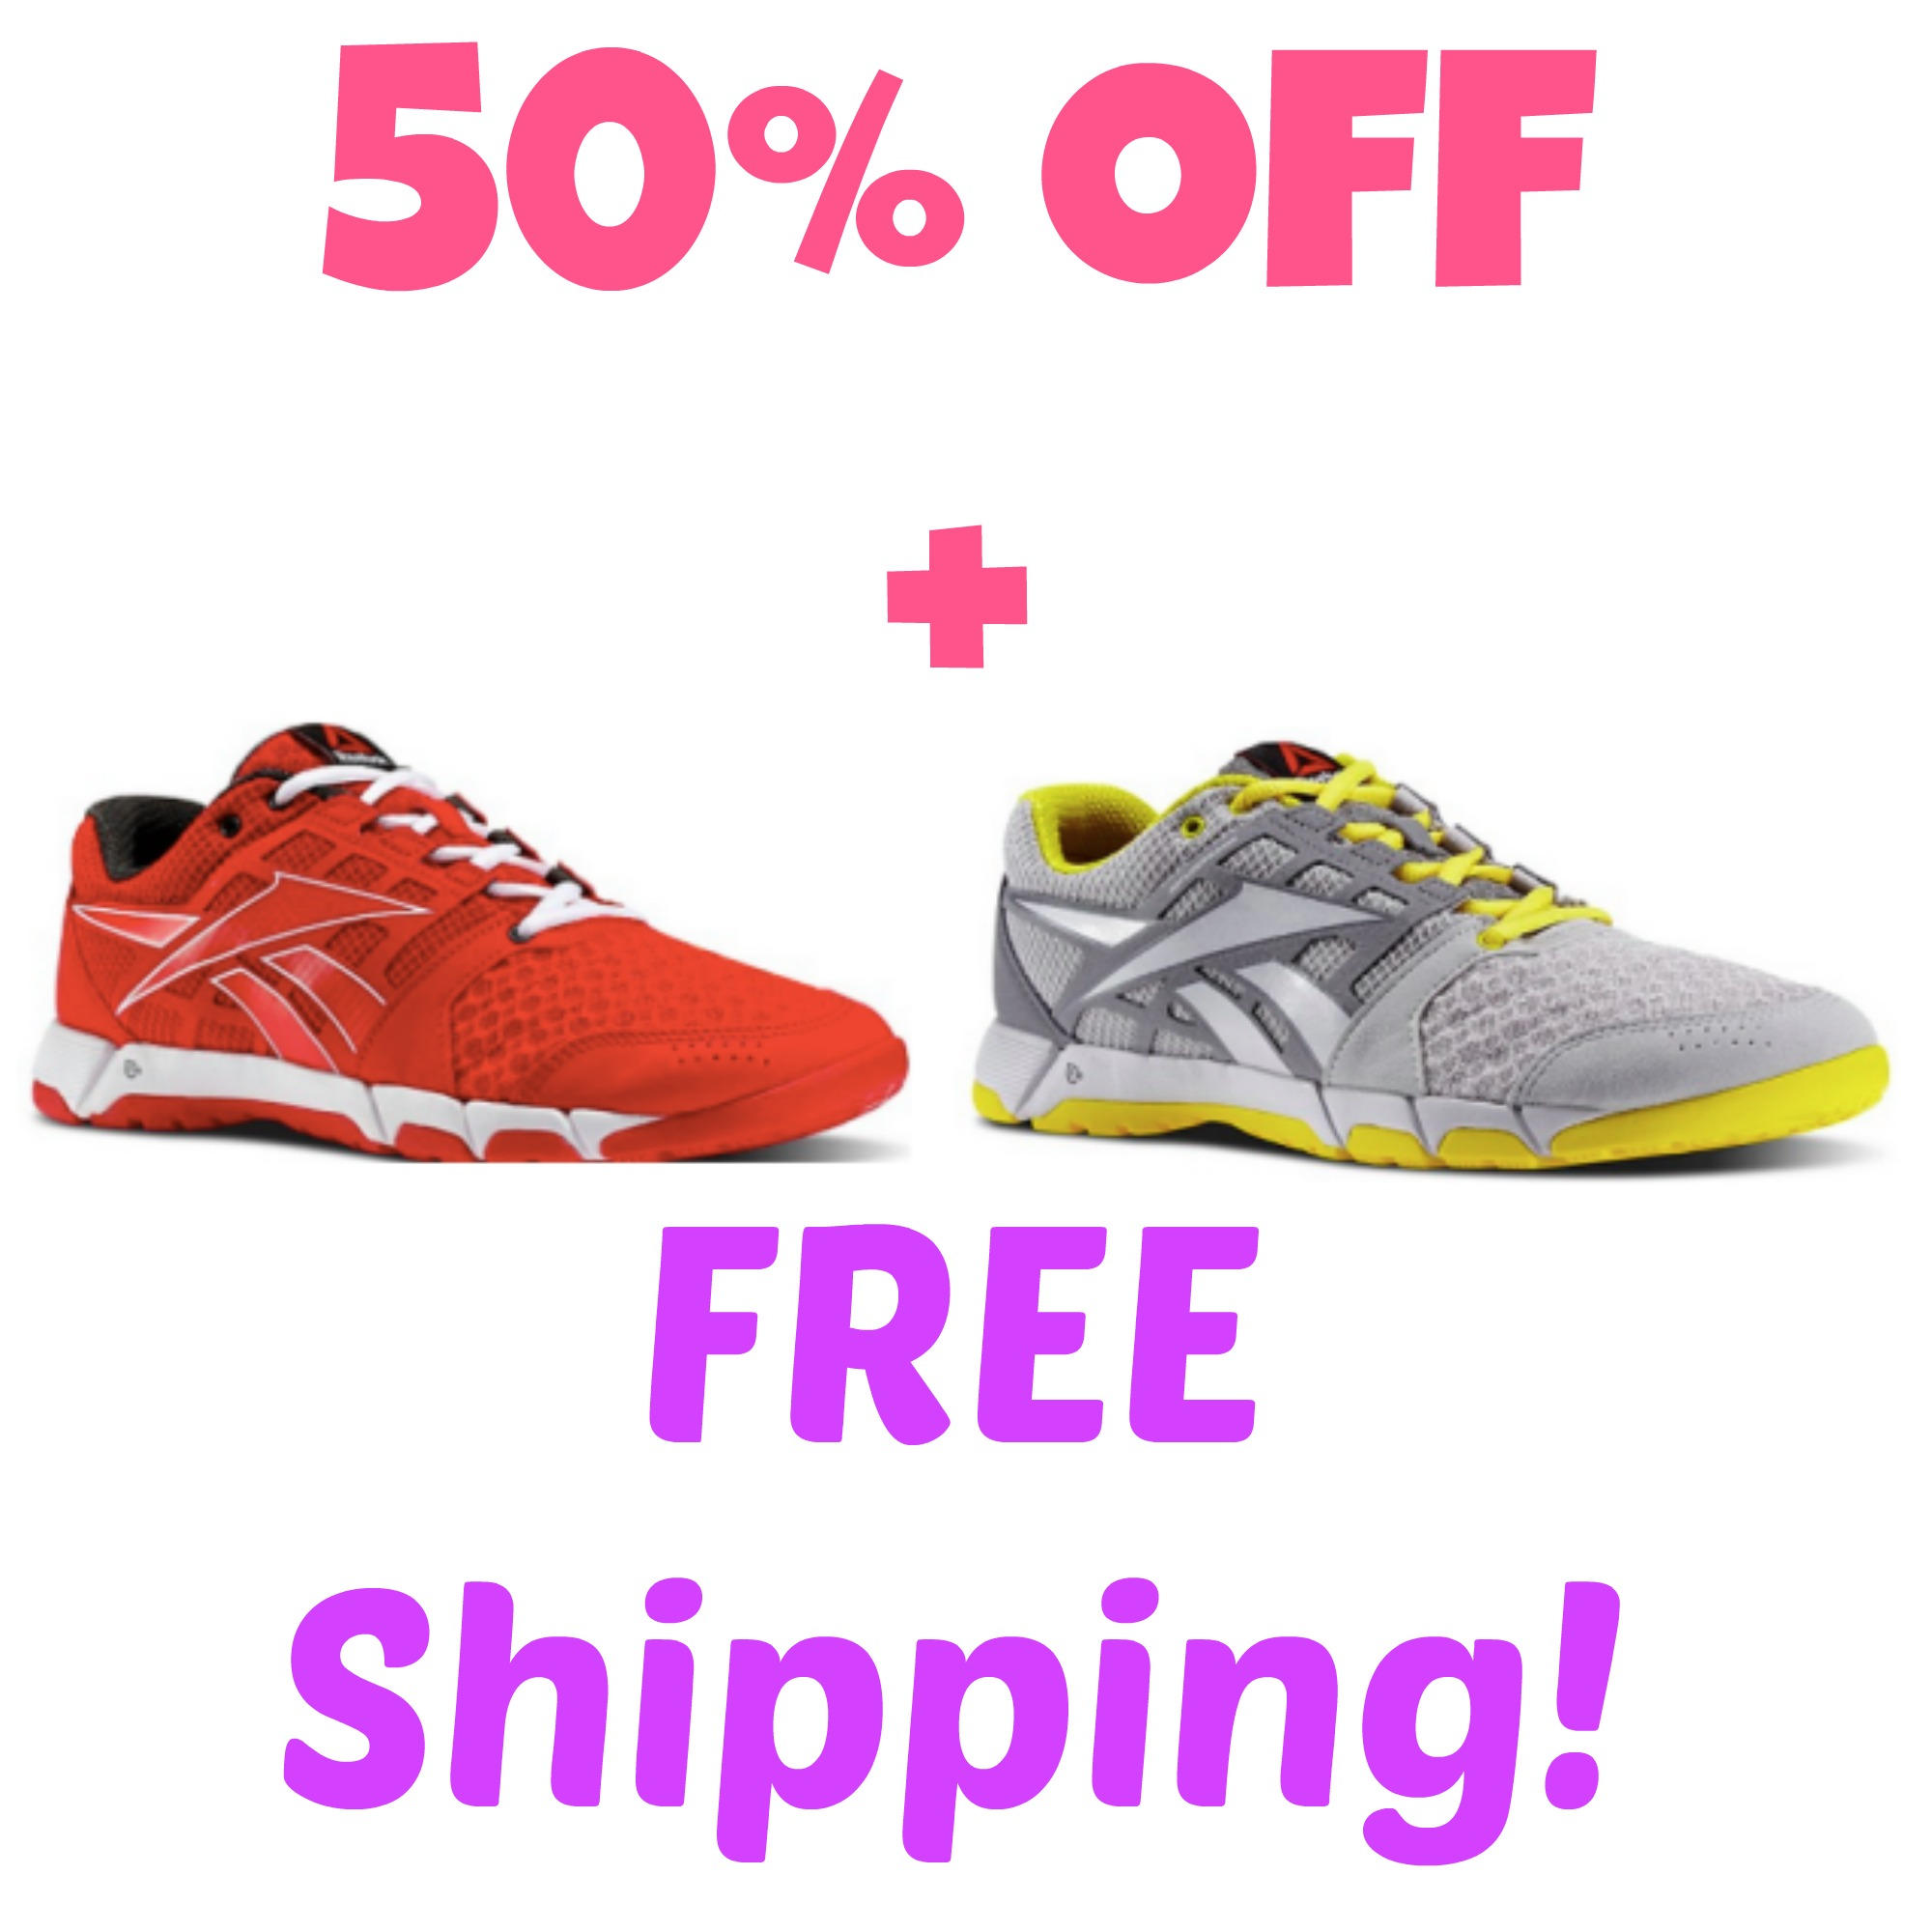 Free Shipping Today: HOT! Reebok Outlet: Extra 50% Off Everything + FREE